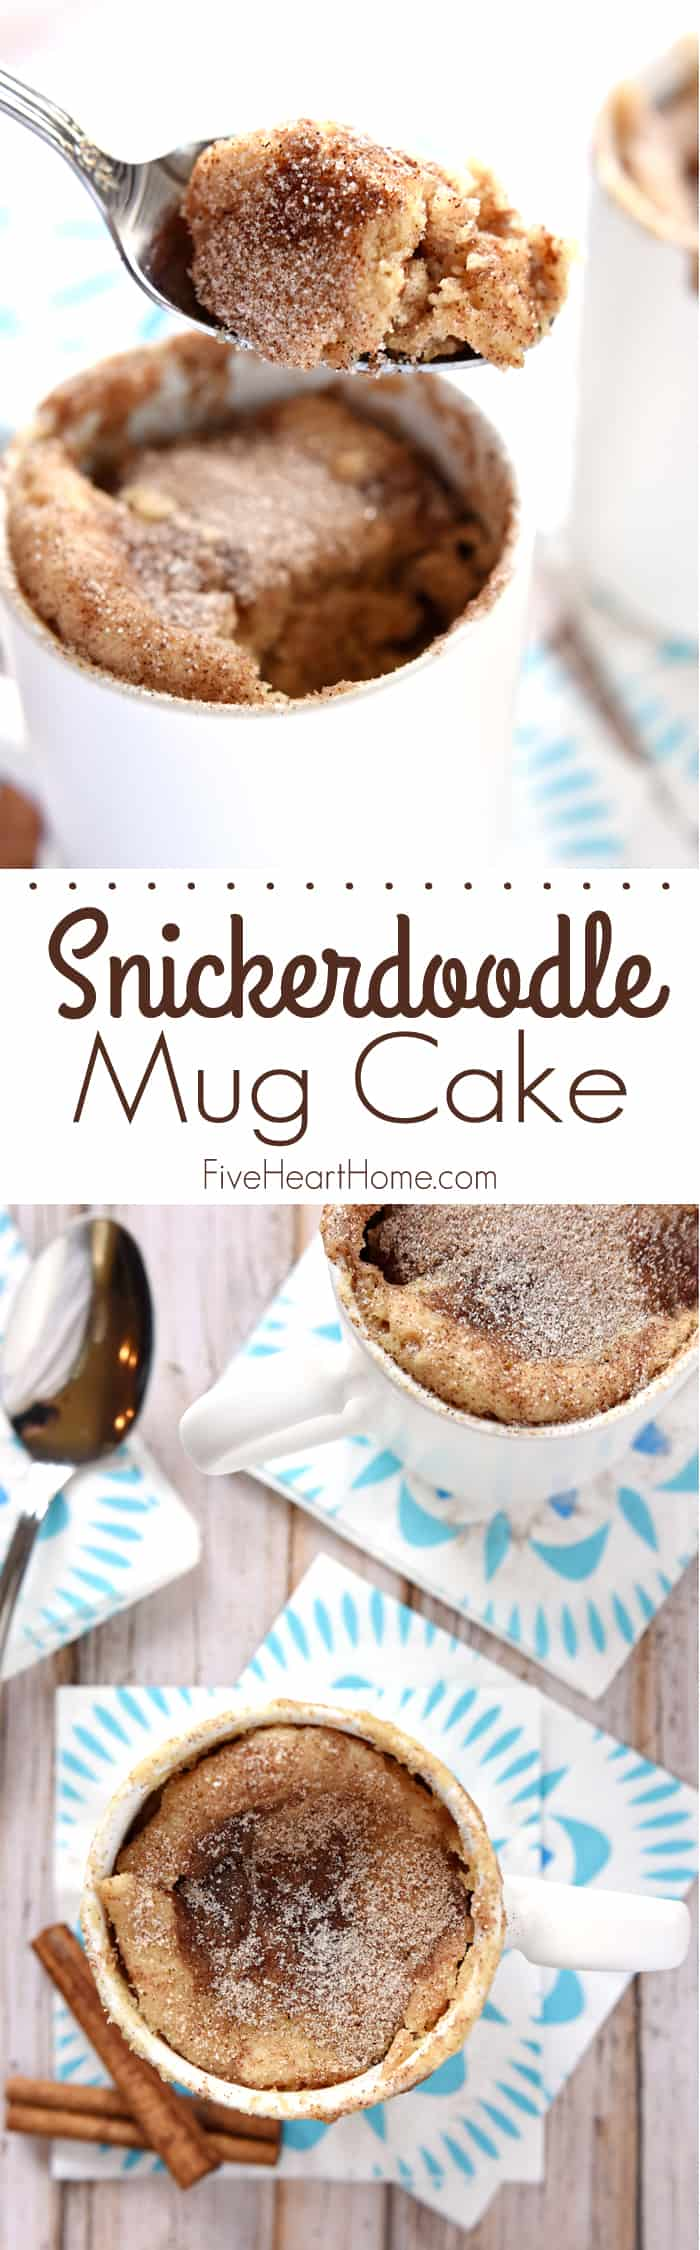 Snickerdoodle Mug Cake By Fivehearthome Foodblogs